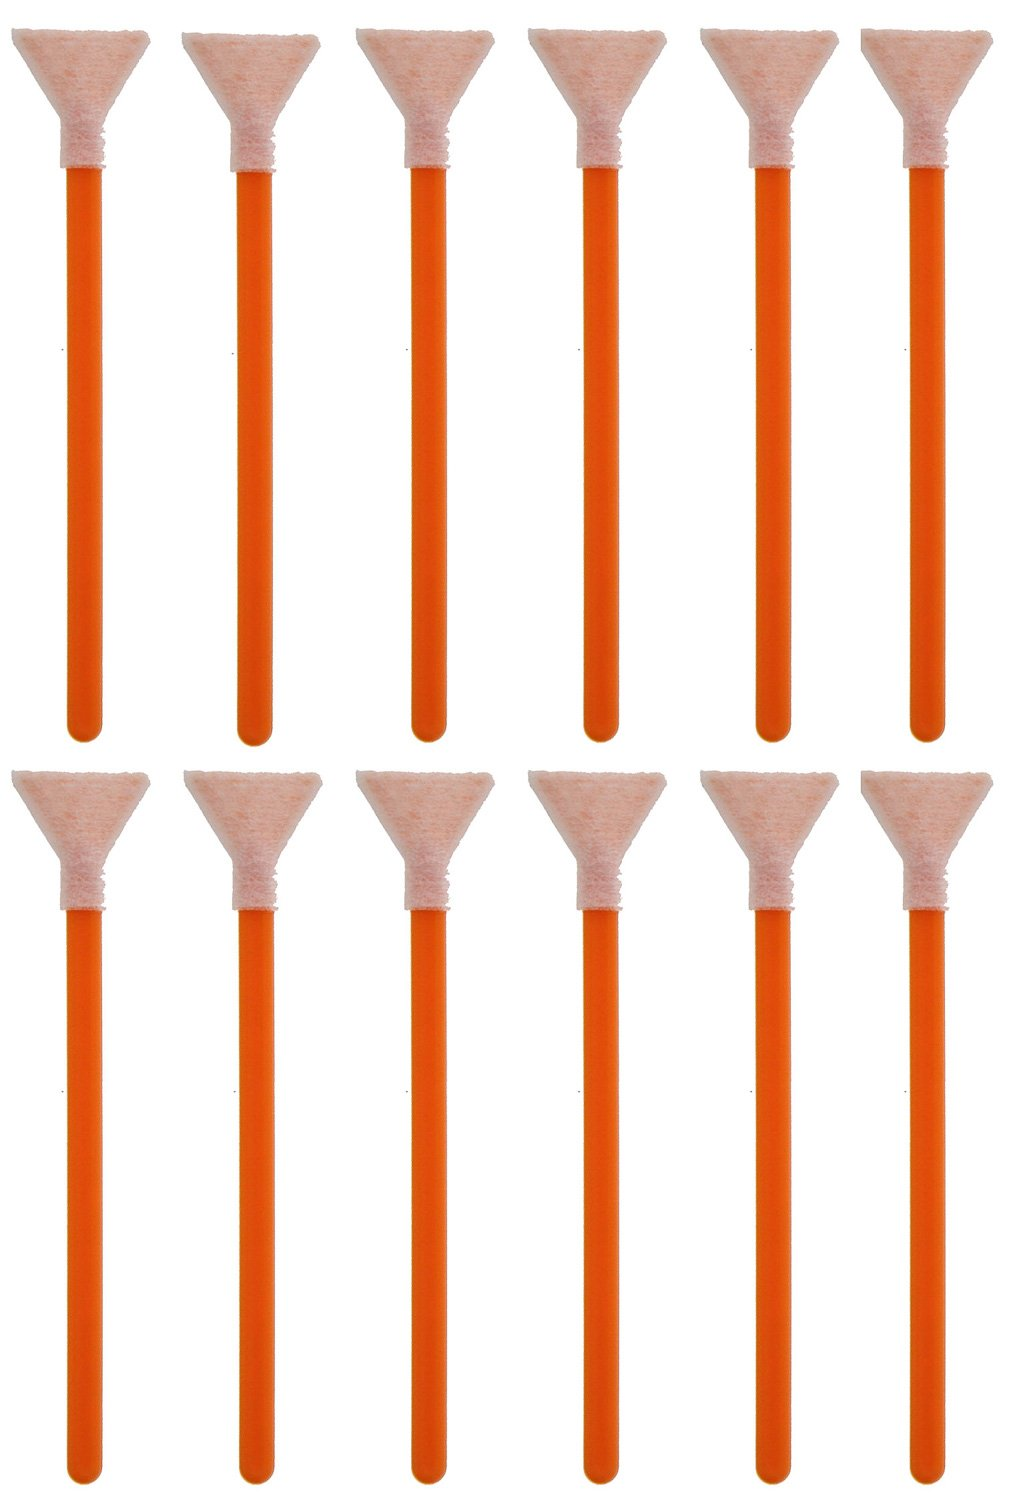 VisibleDust 2863168 Orange Cleaning Swabs 1.3X for Sensor by VisibleDust